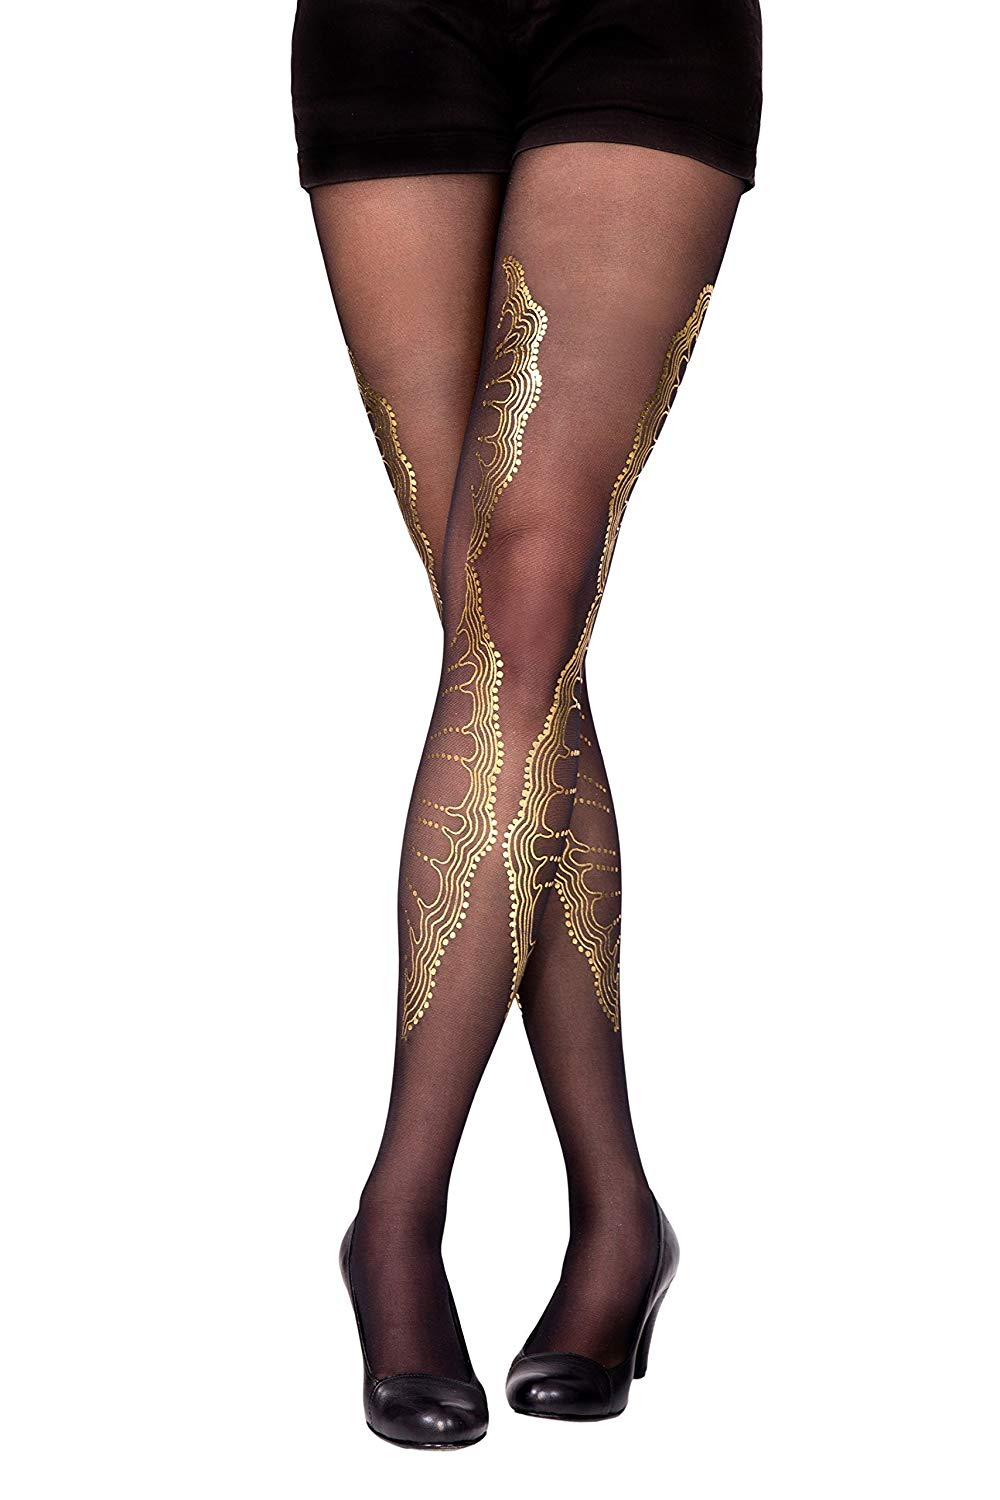 15e55ed73a8279 Cheap Shorts And Lace Tights, find Shorts And Lace Tights deals on ...